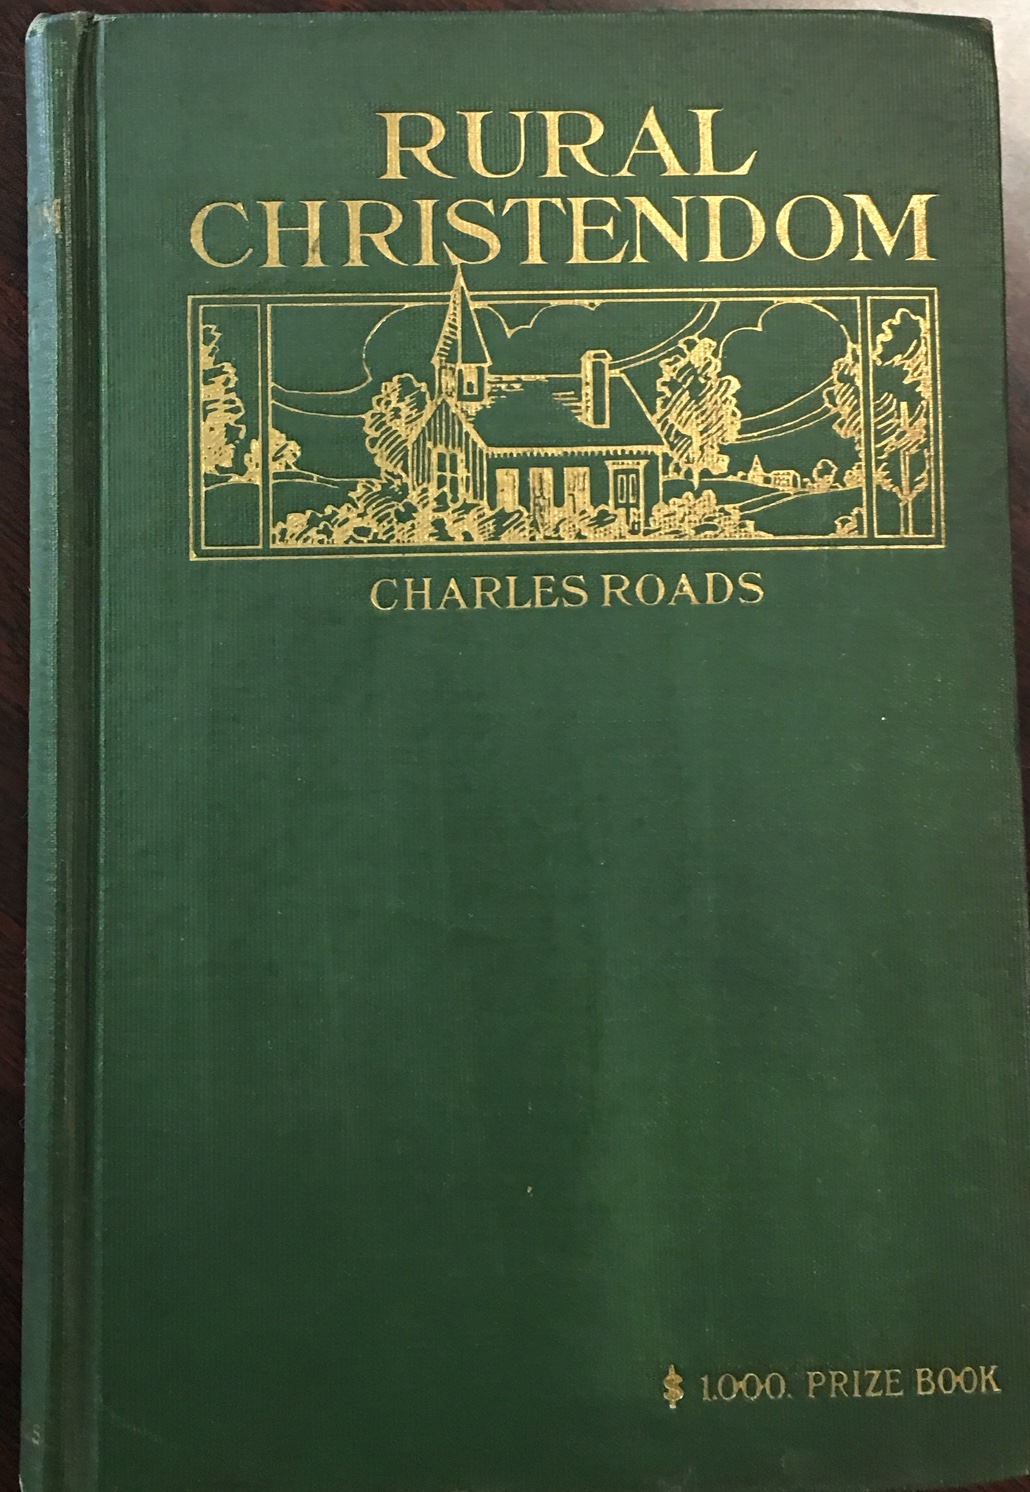 Image for Rural Christendom; or, The problems of Christianizing Country Communities - 3rd Edition (Green Fund Book No. 15)